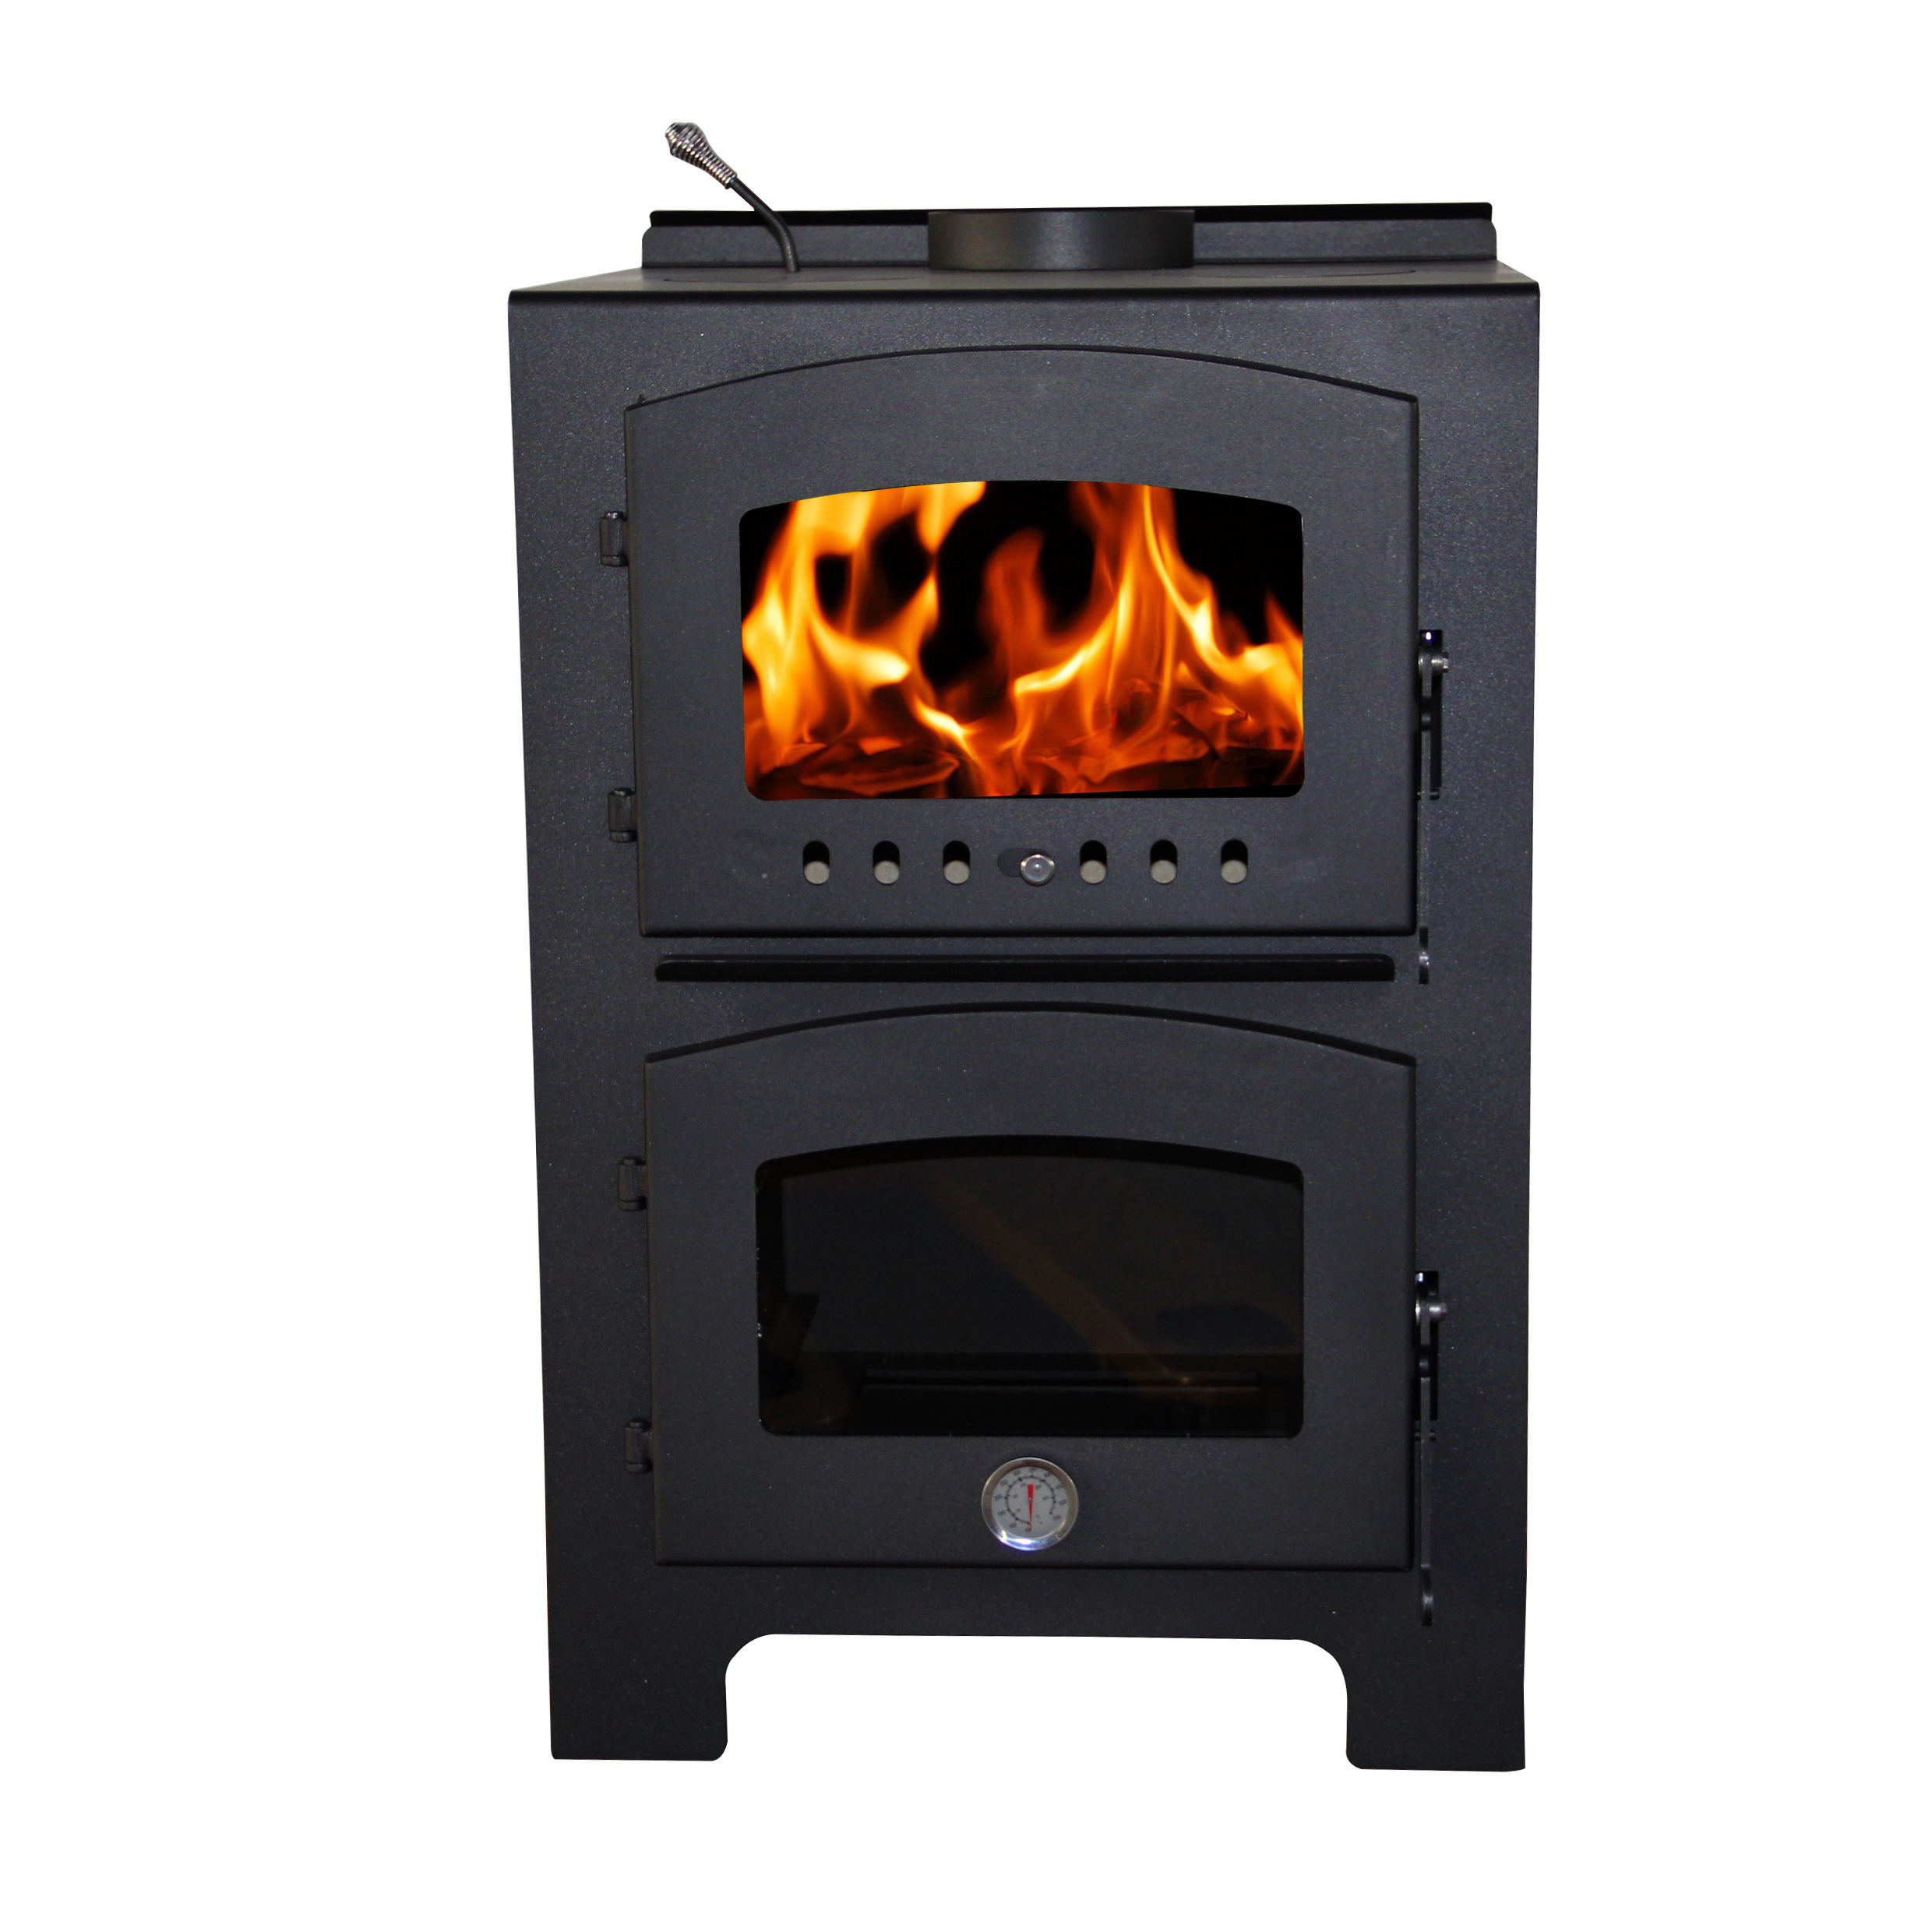 Australia wood burning stove cooking stove wood stove with oven WM203-1100